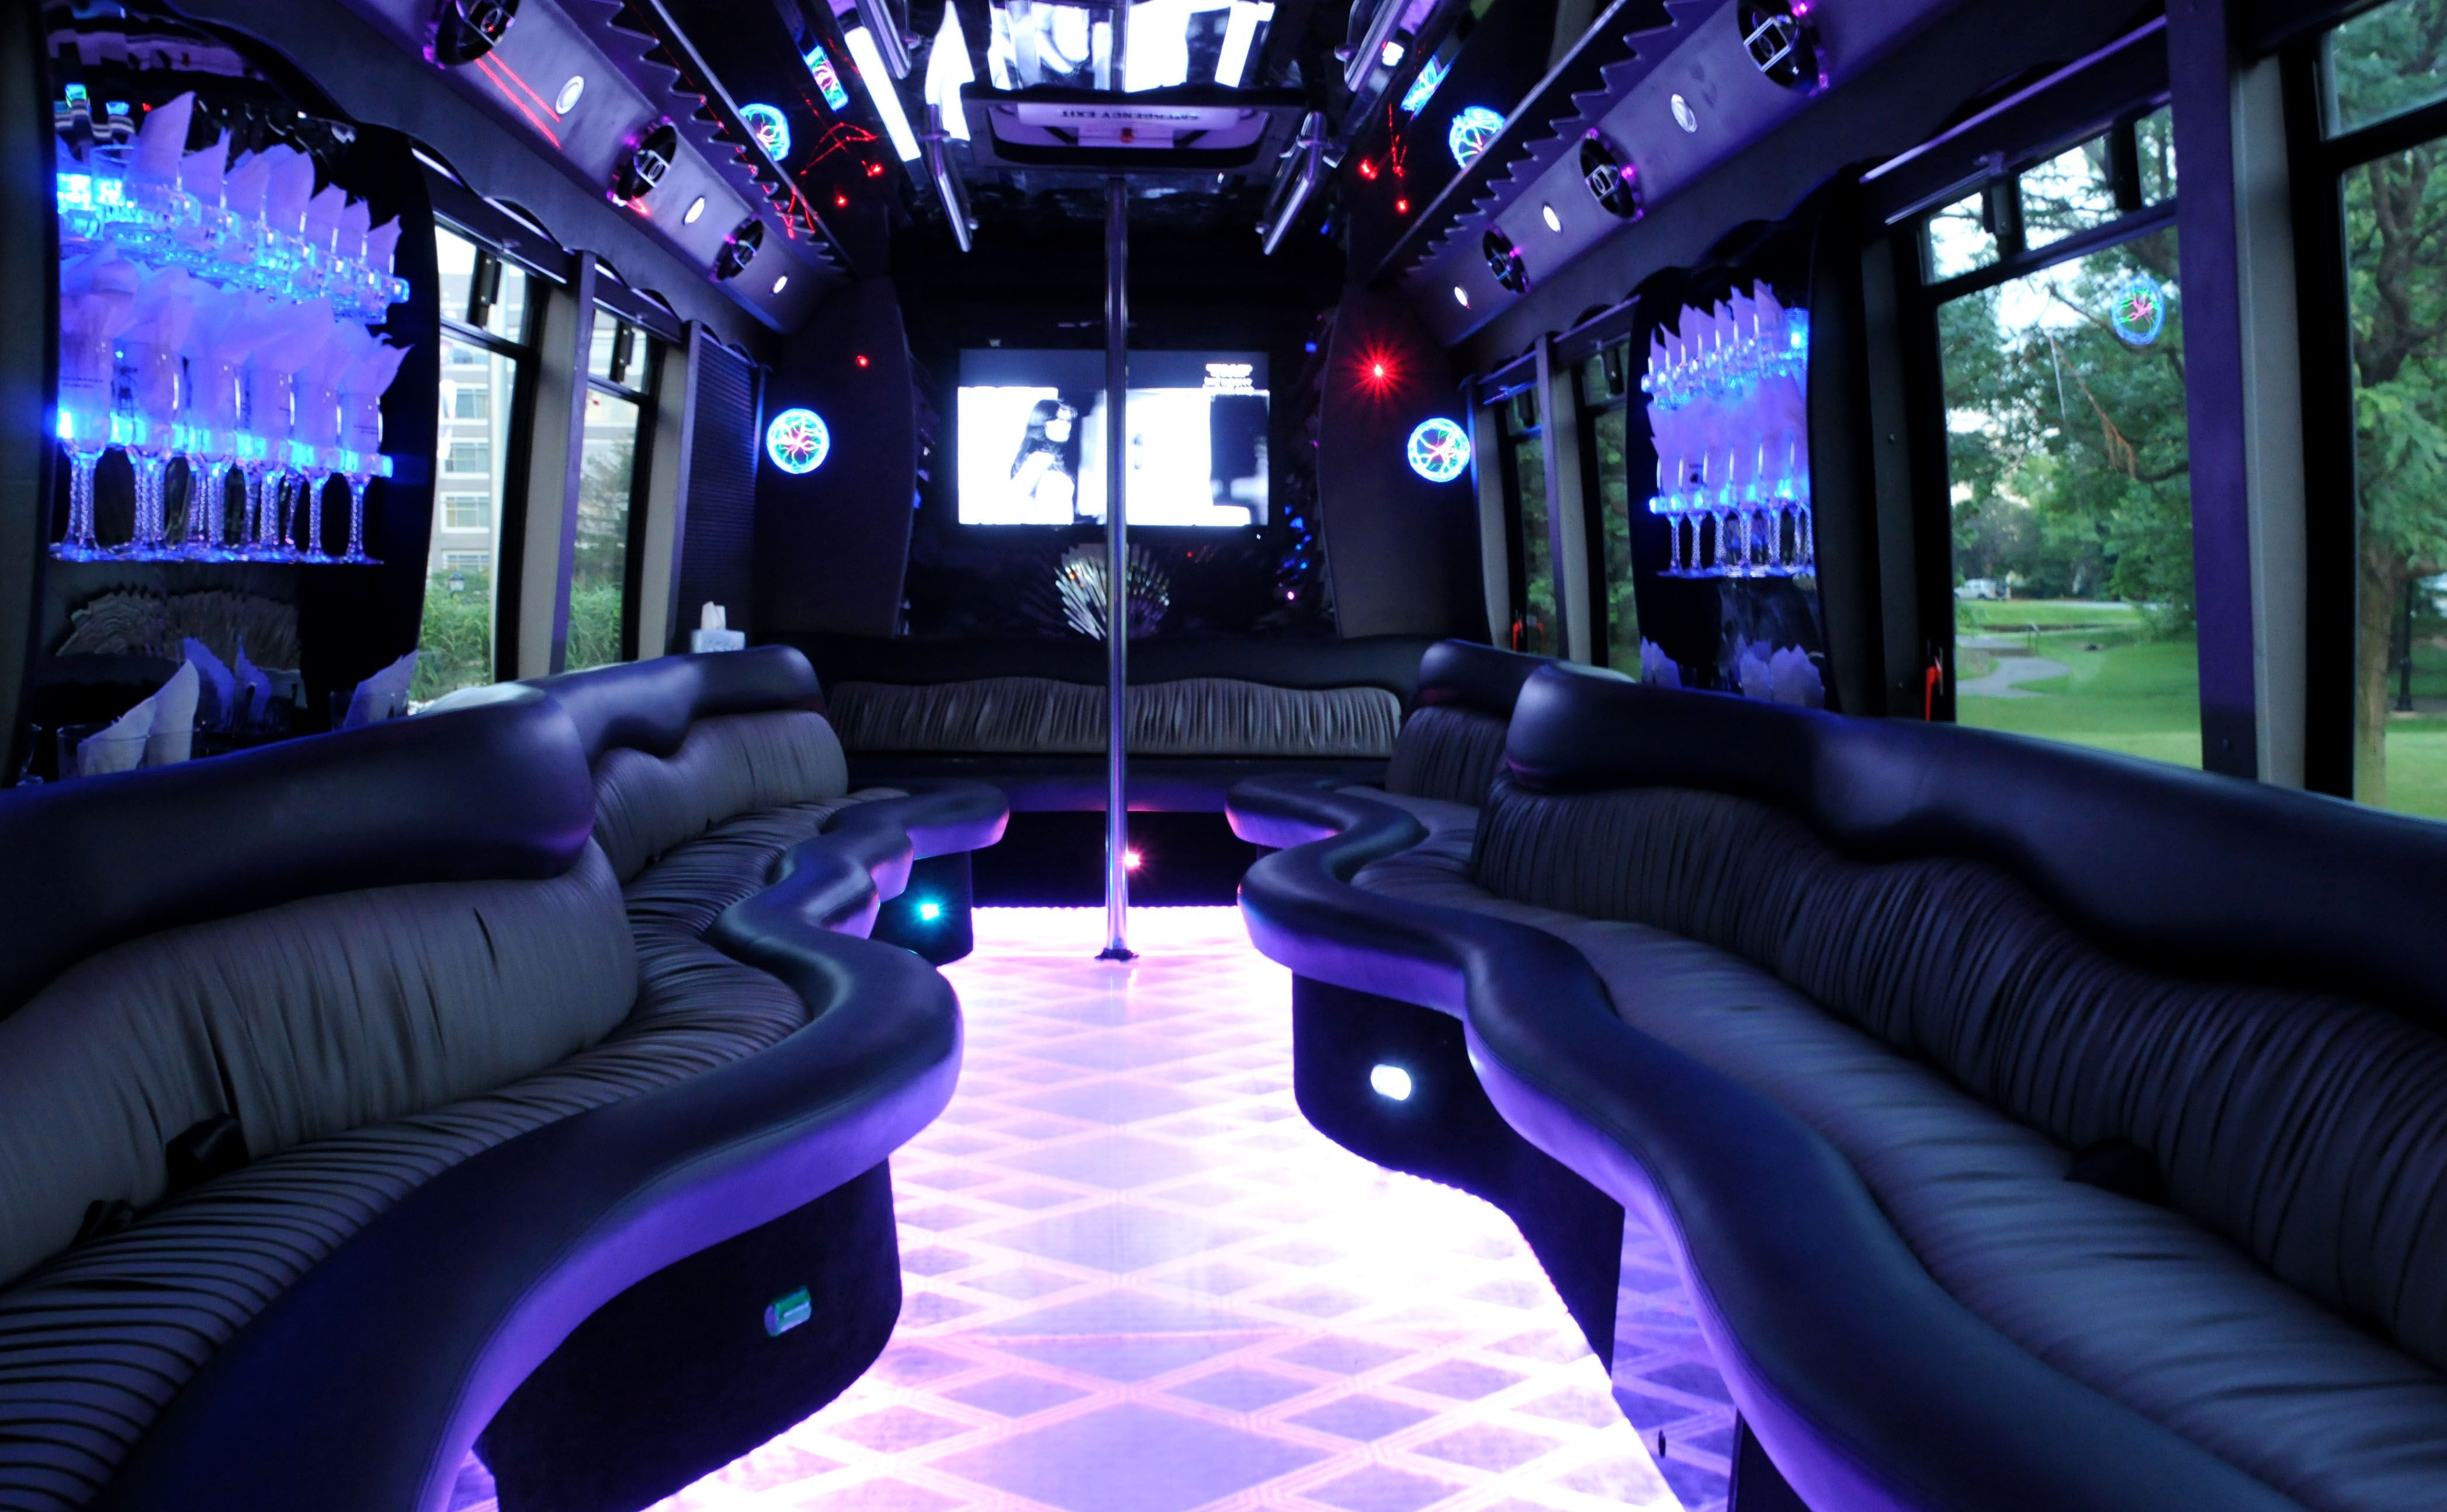 Wedding Party Bus Rental Vintage As Limousines Mais Luxuosas My Wedding Idea Party Bus Party Bus Rental Party Bus Limo